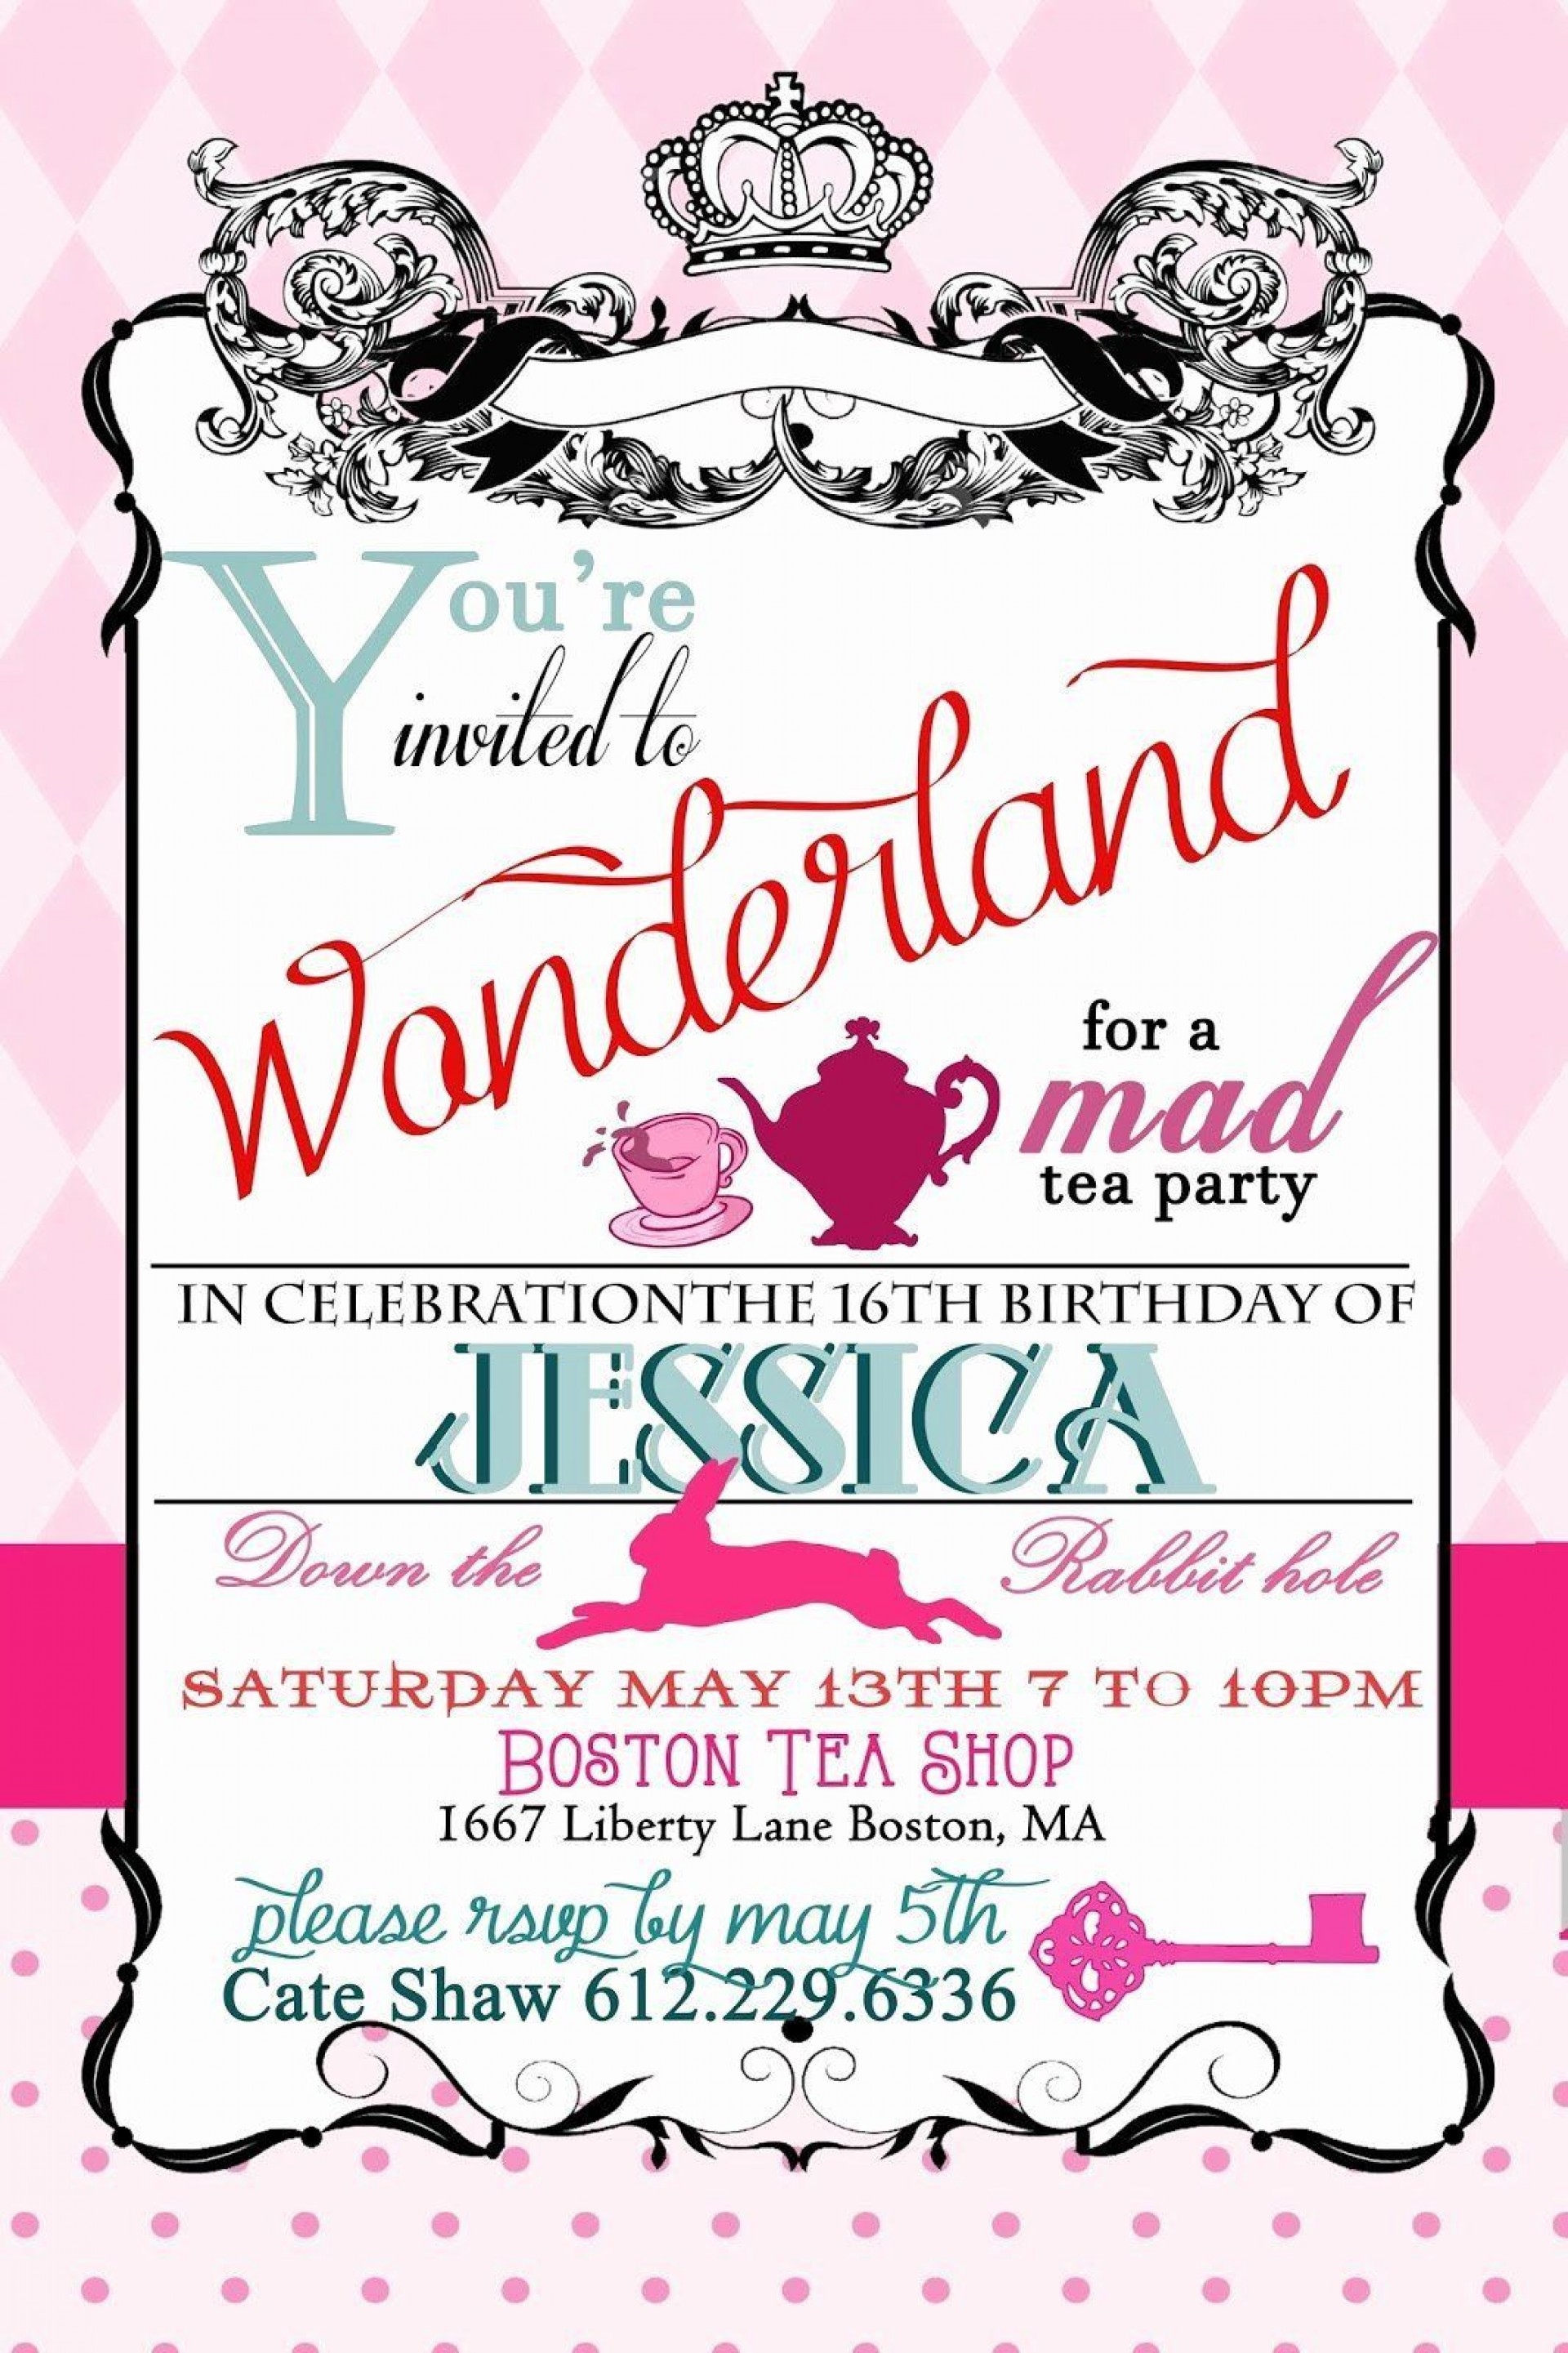 005 Exceptional Alice In Wonderland Party Template High Definition  Templates Invitation Free1920